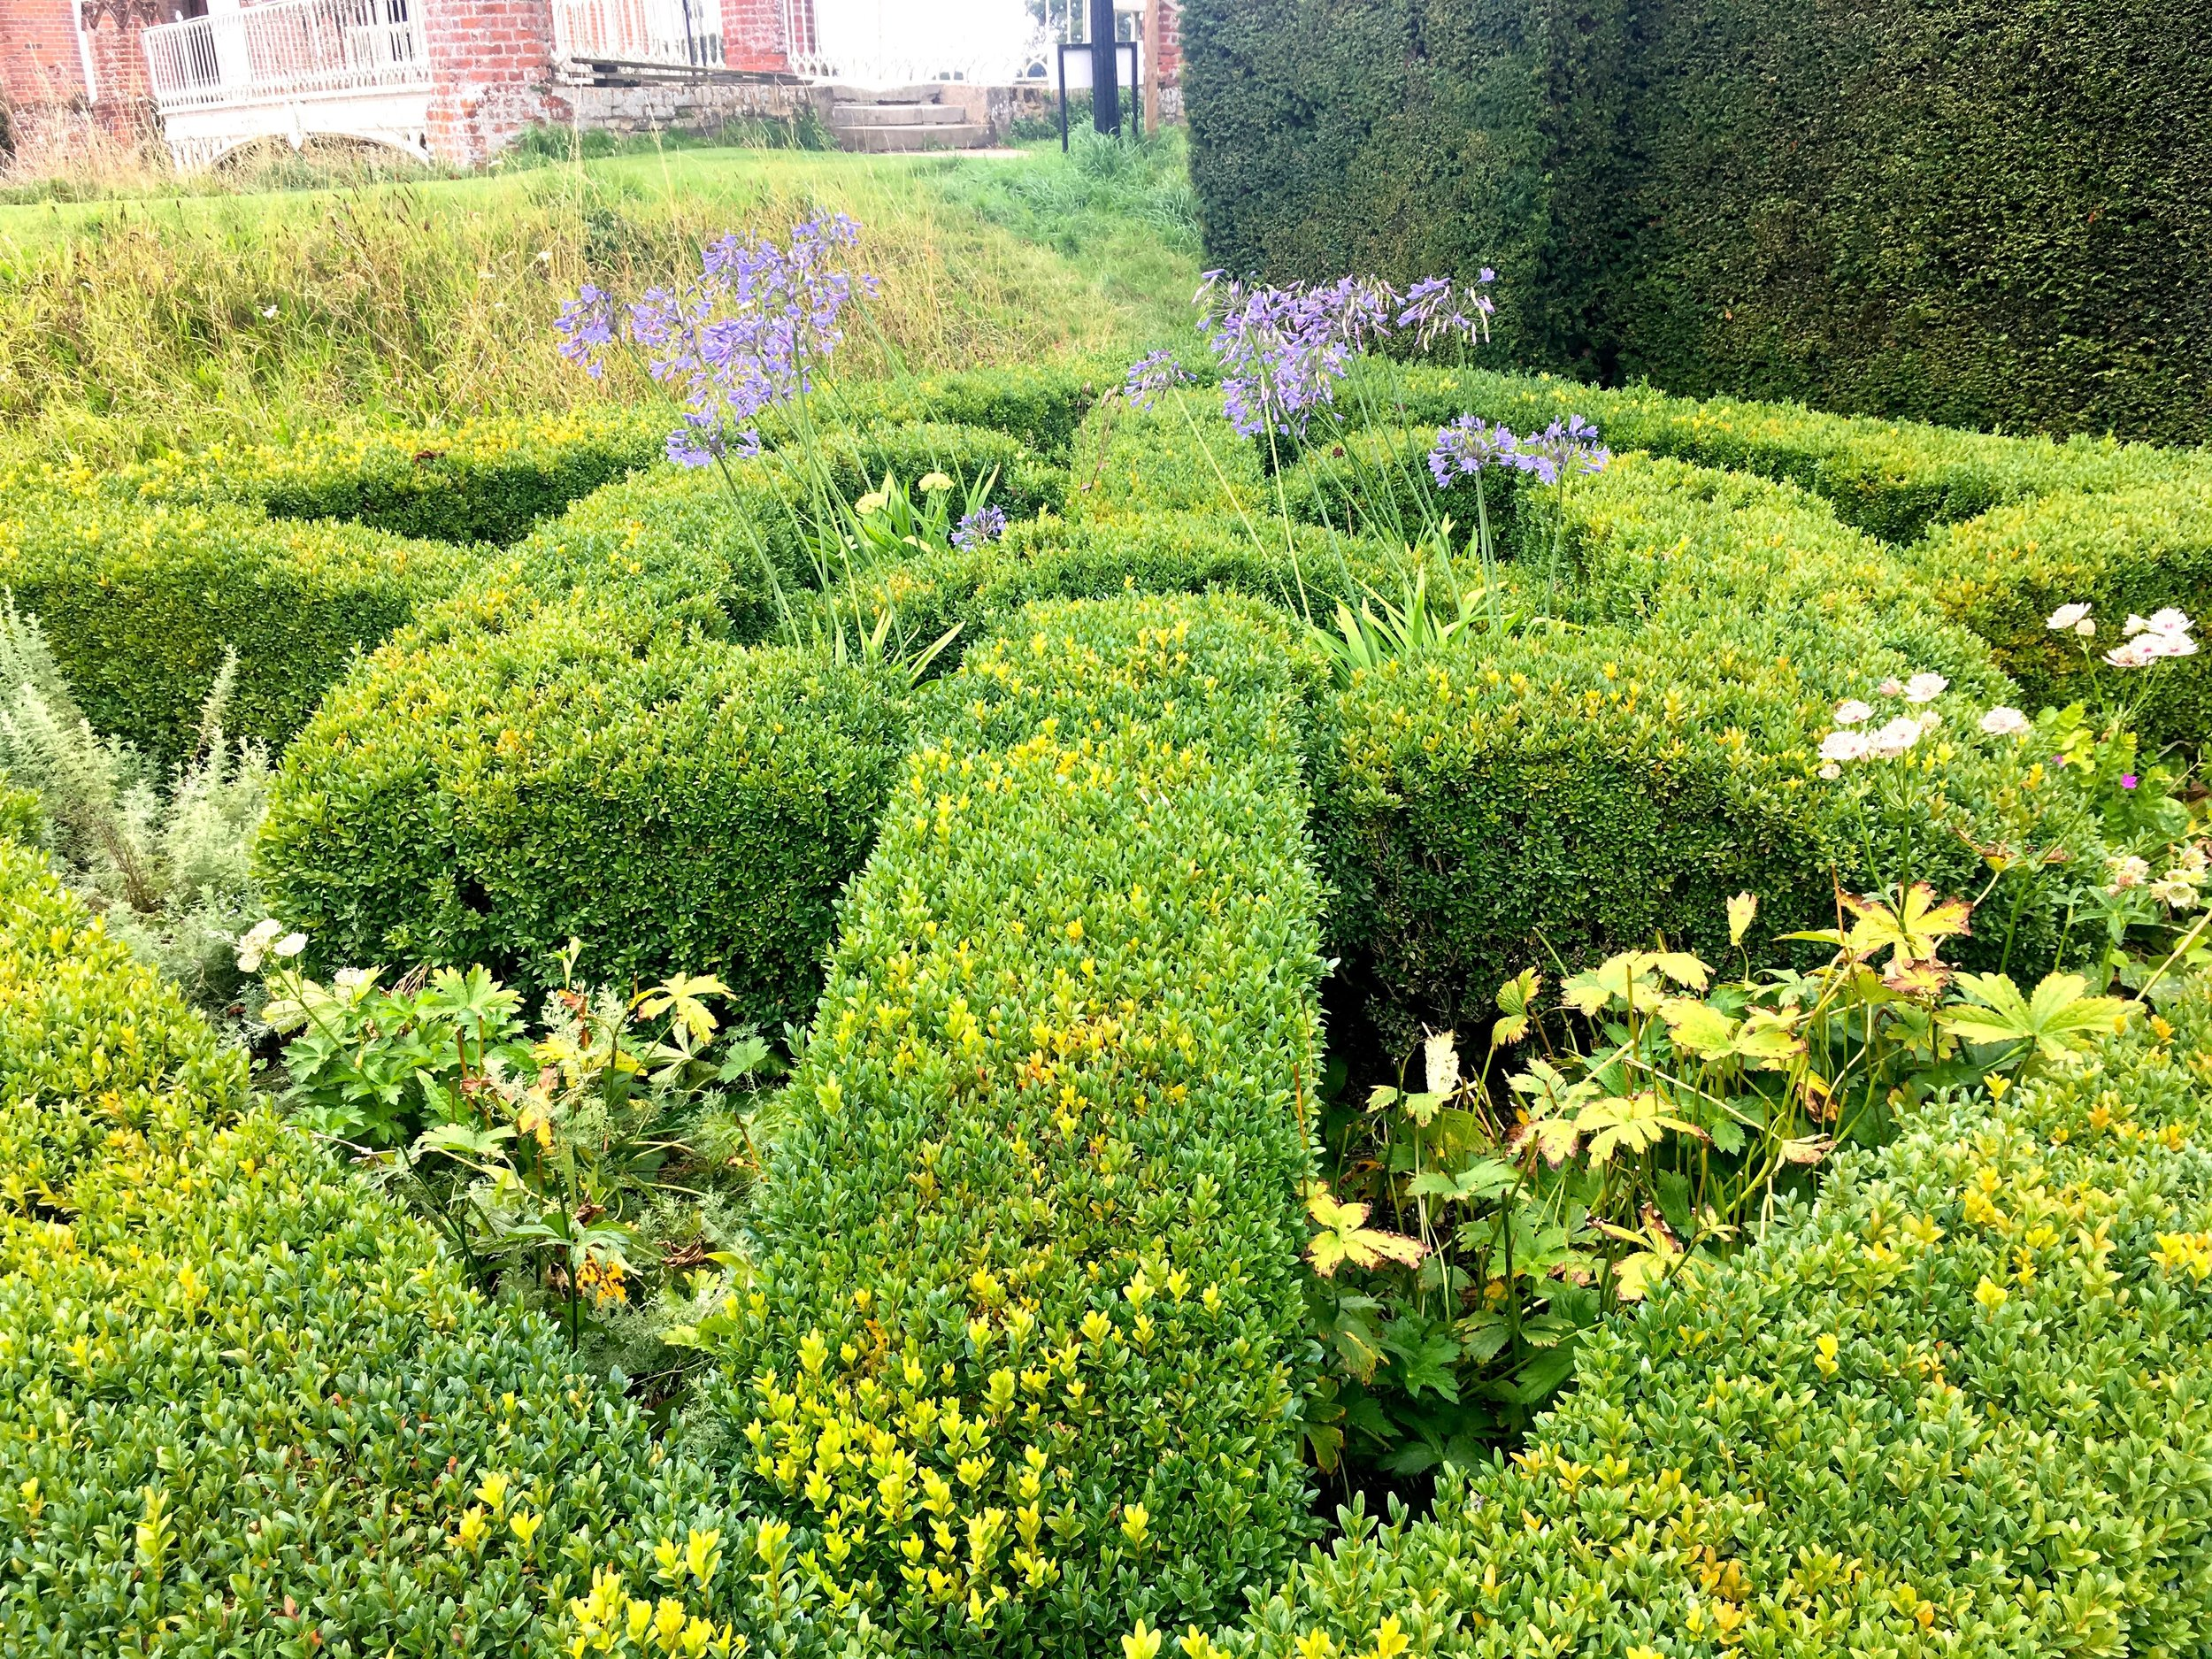 A close up of the hedges in the knot garden at Helmington Hall